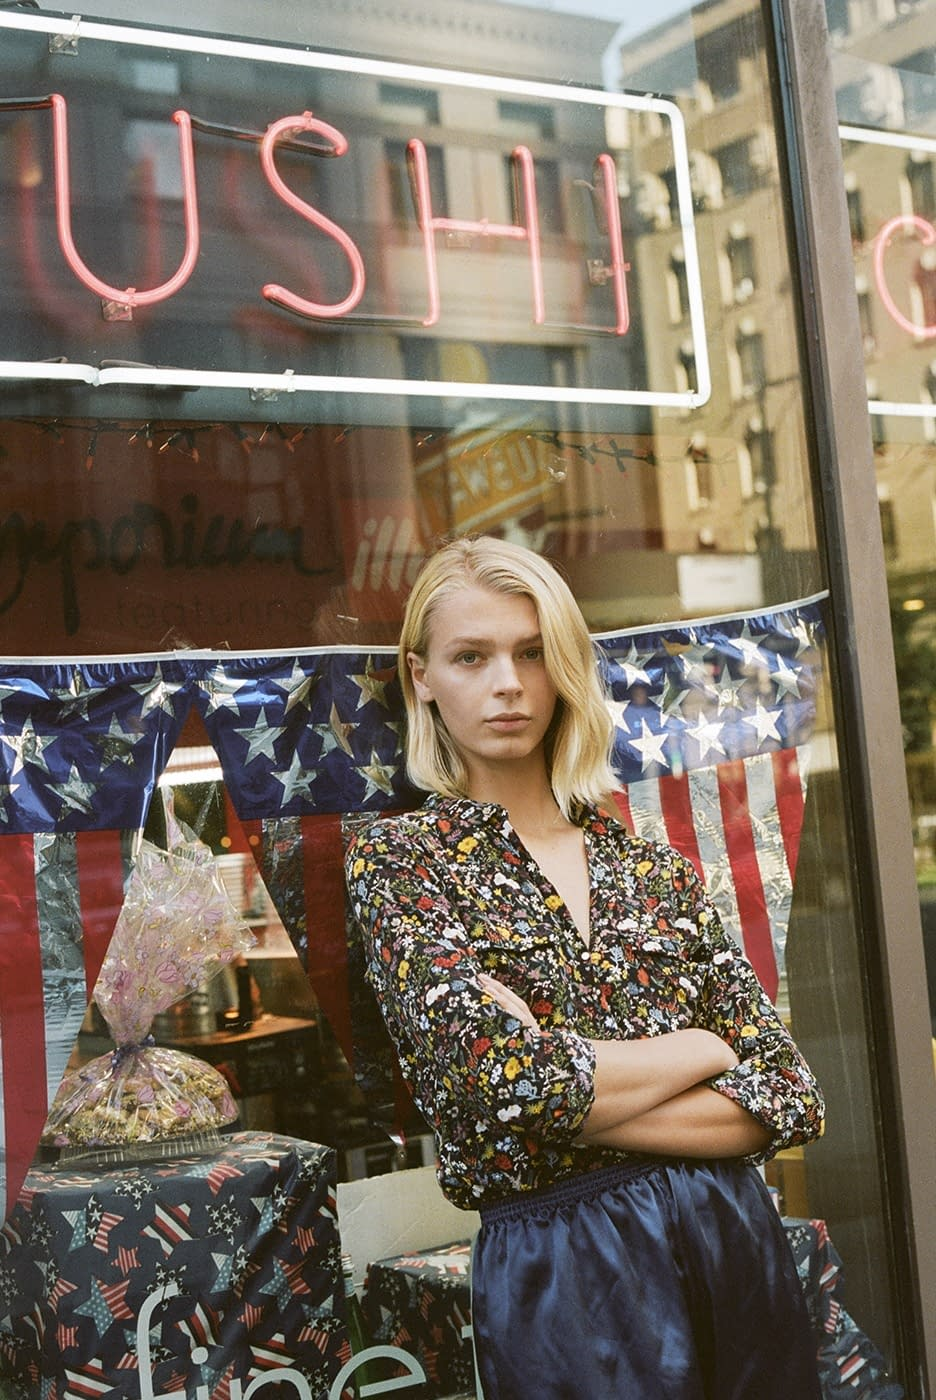 KYLIE NEW YORK BY ENRIC GALCERAN - PHOTO 22